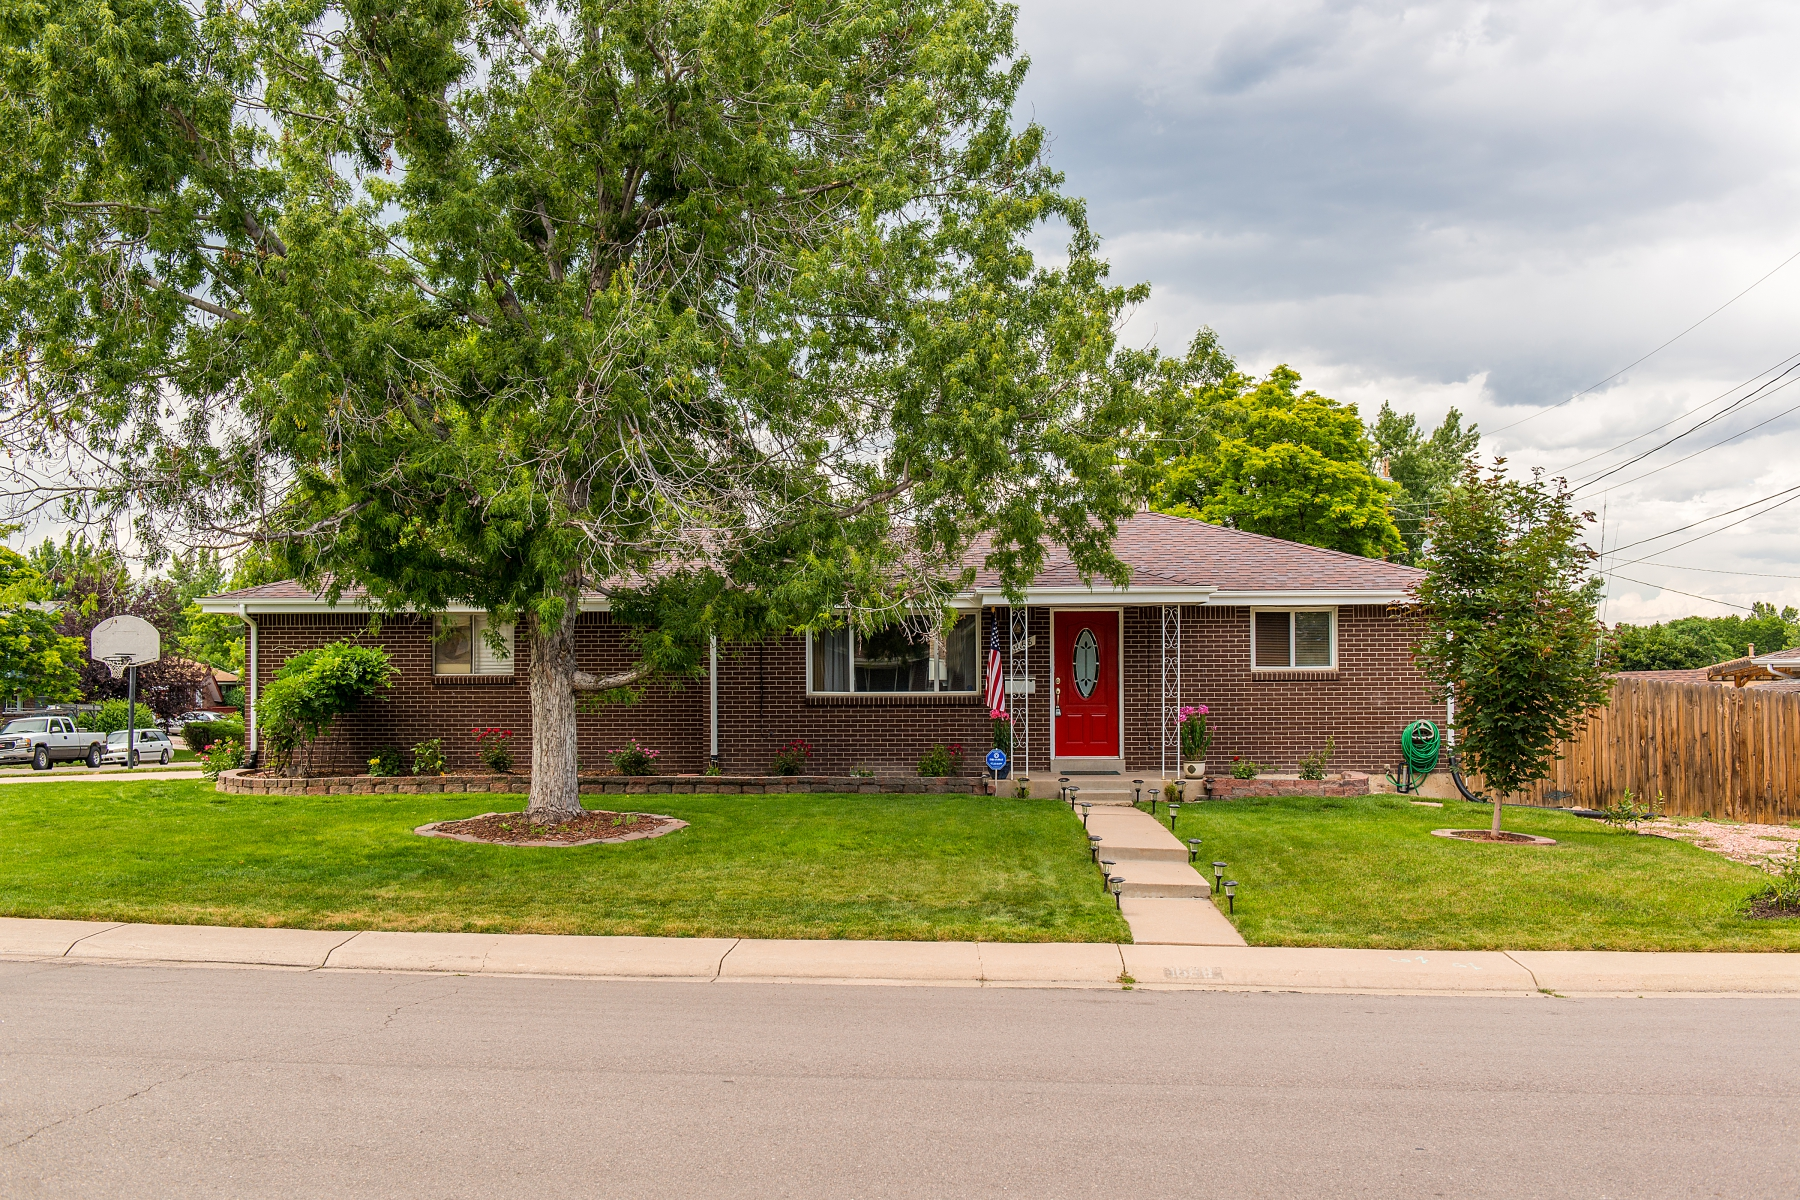 Single Family Home for Sale at Charming ranch style home in a wonderful Lakewood neighborhood! 1668 S Brentwood St Lakewood, Colorado 80232 United States